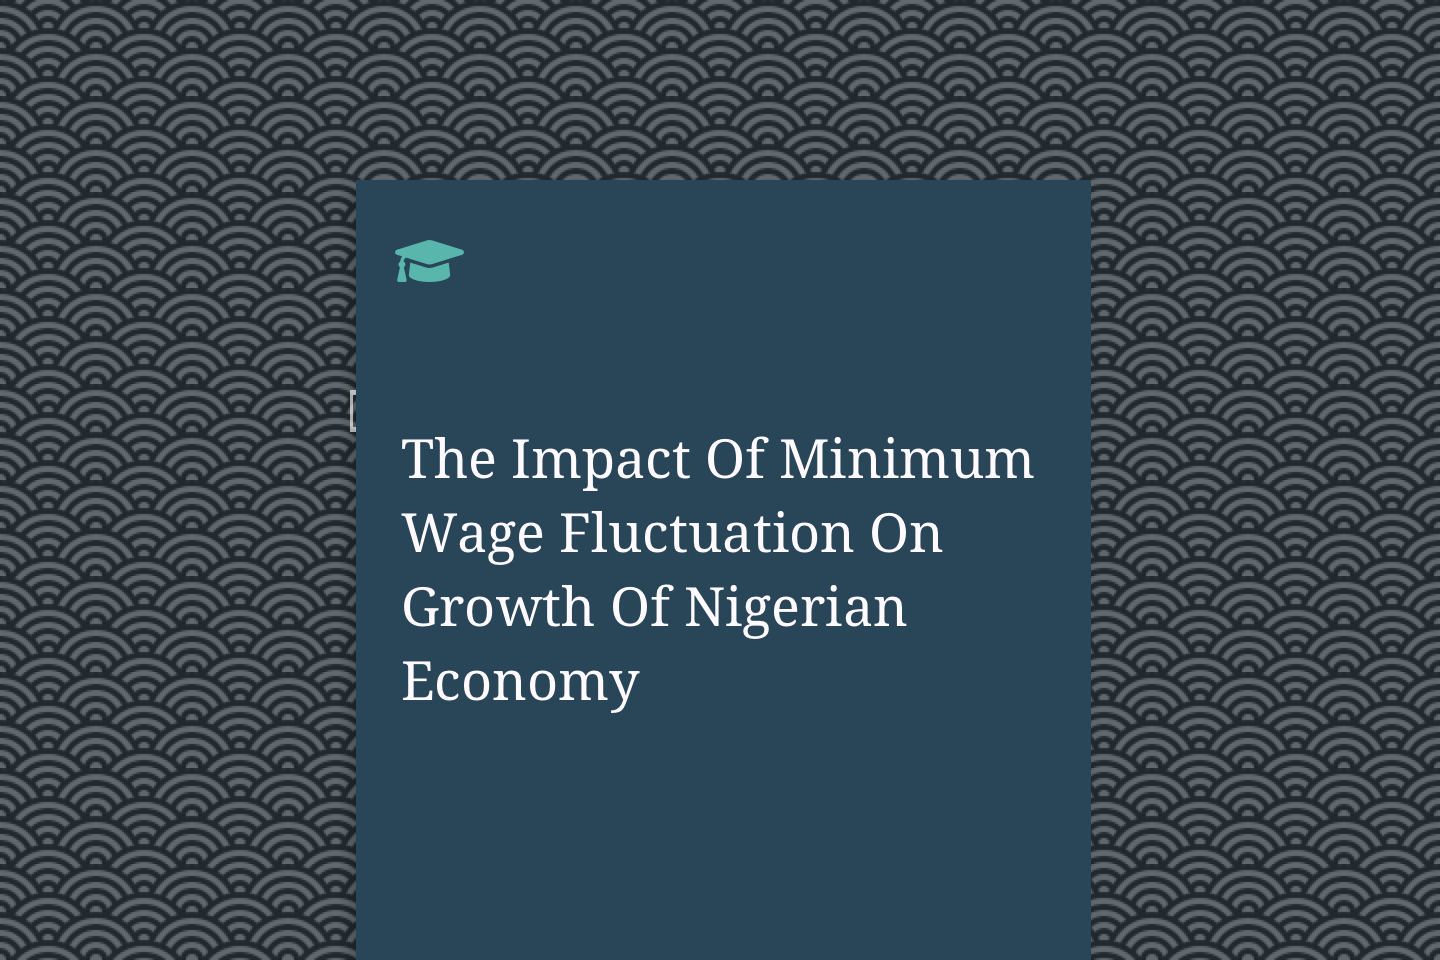 The Impact Of Minimum Wage Fluctuation On Growth Of Nigerian Economy